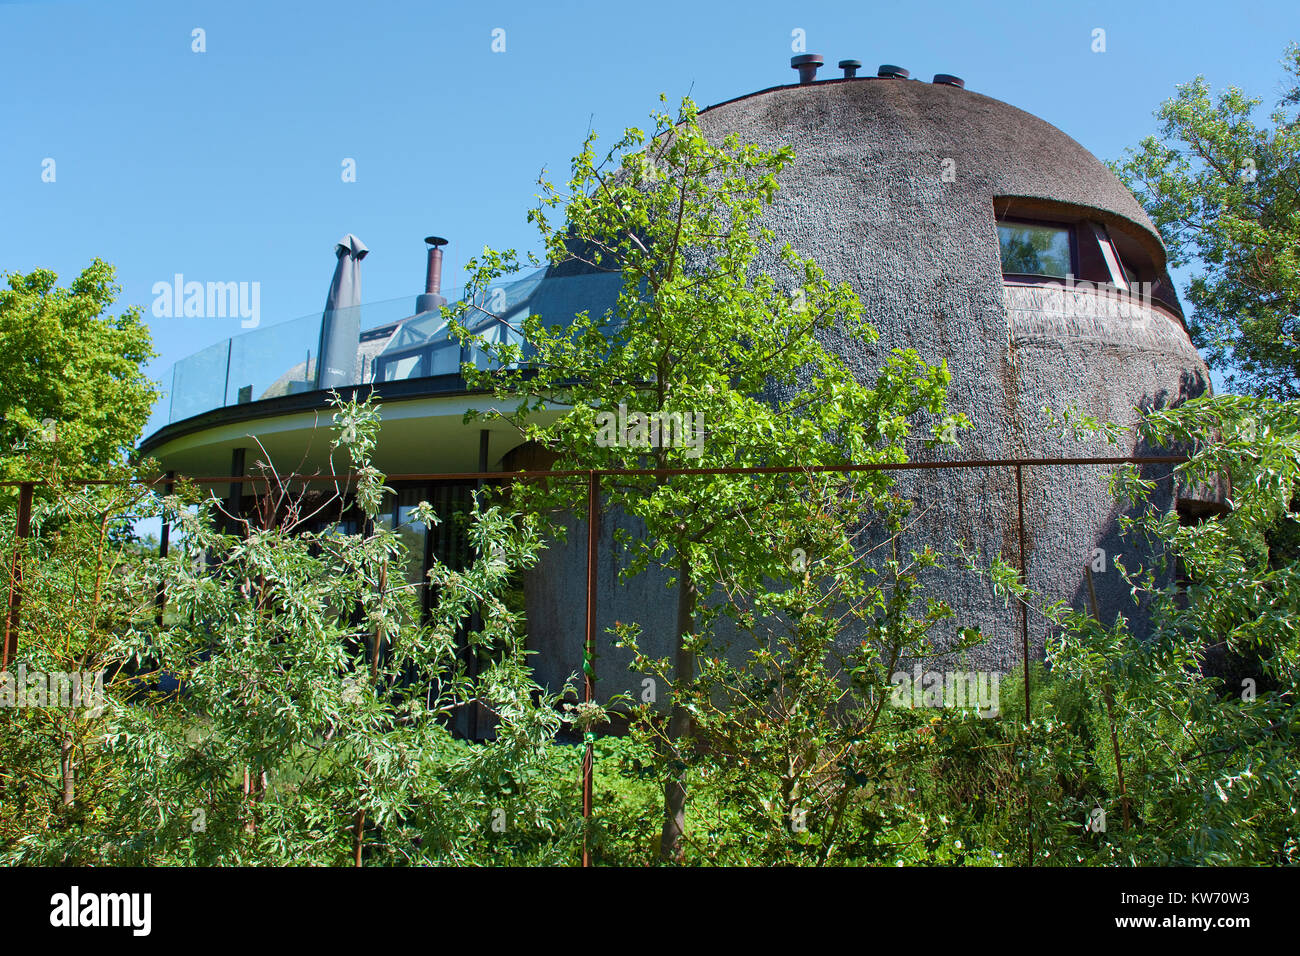 Modern design house, thatched-roof house at the village Ahrenshoop, Fishland, Mecklenburg-Western Pomerania, Baltic - Stock Image